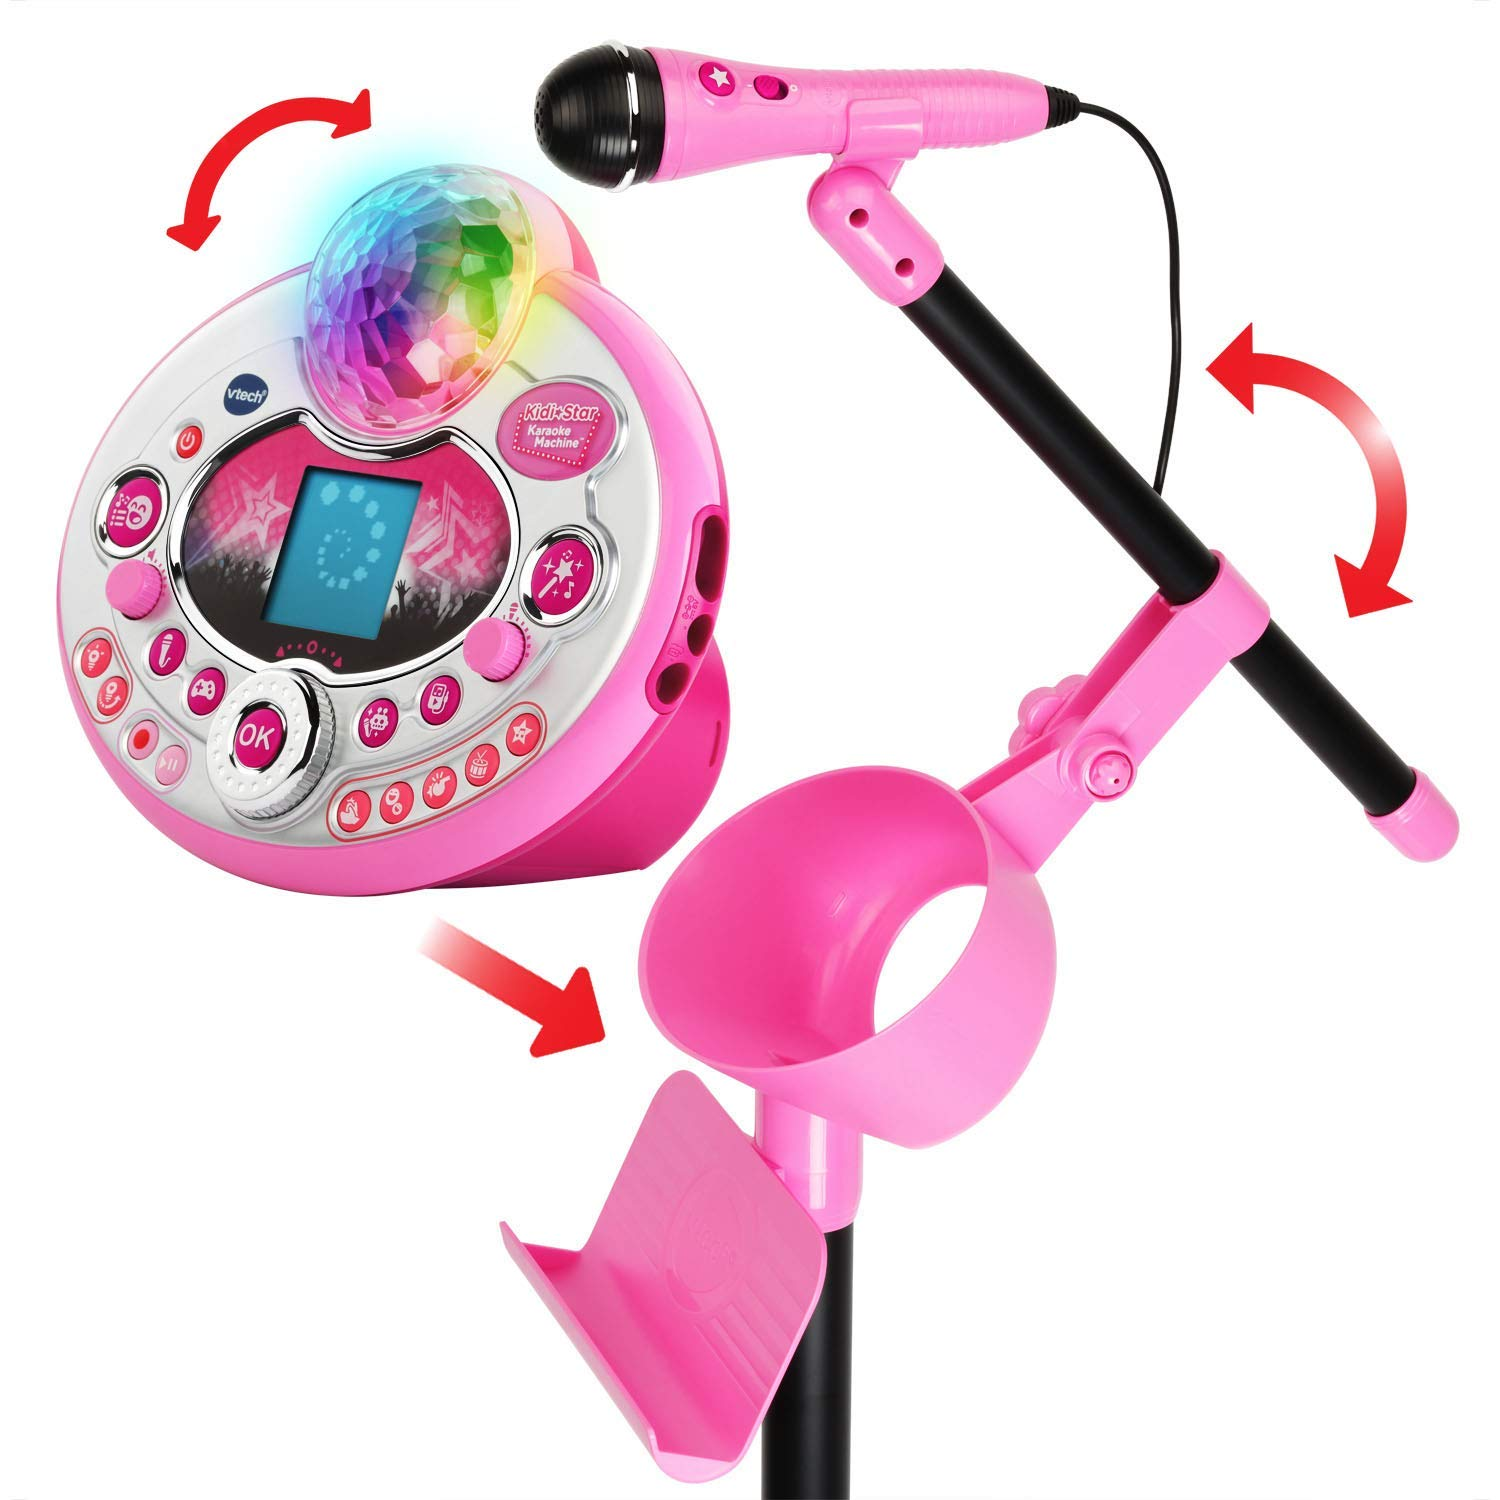 VTech Kidi Star Karaoke System 2 Mics with Mic Stand & AC Adapter, Pink (Renewed) by VTech (Image #2)